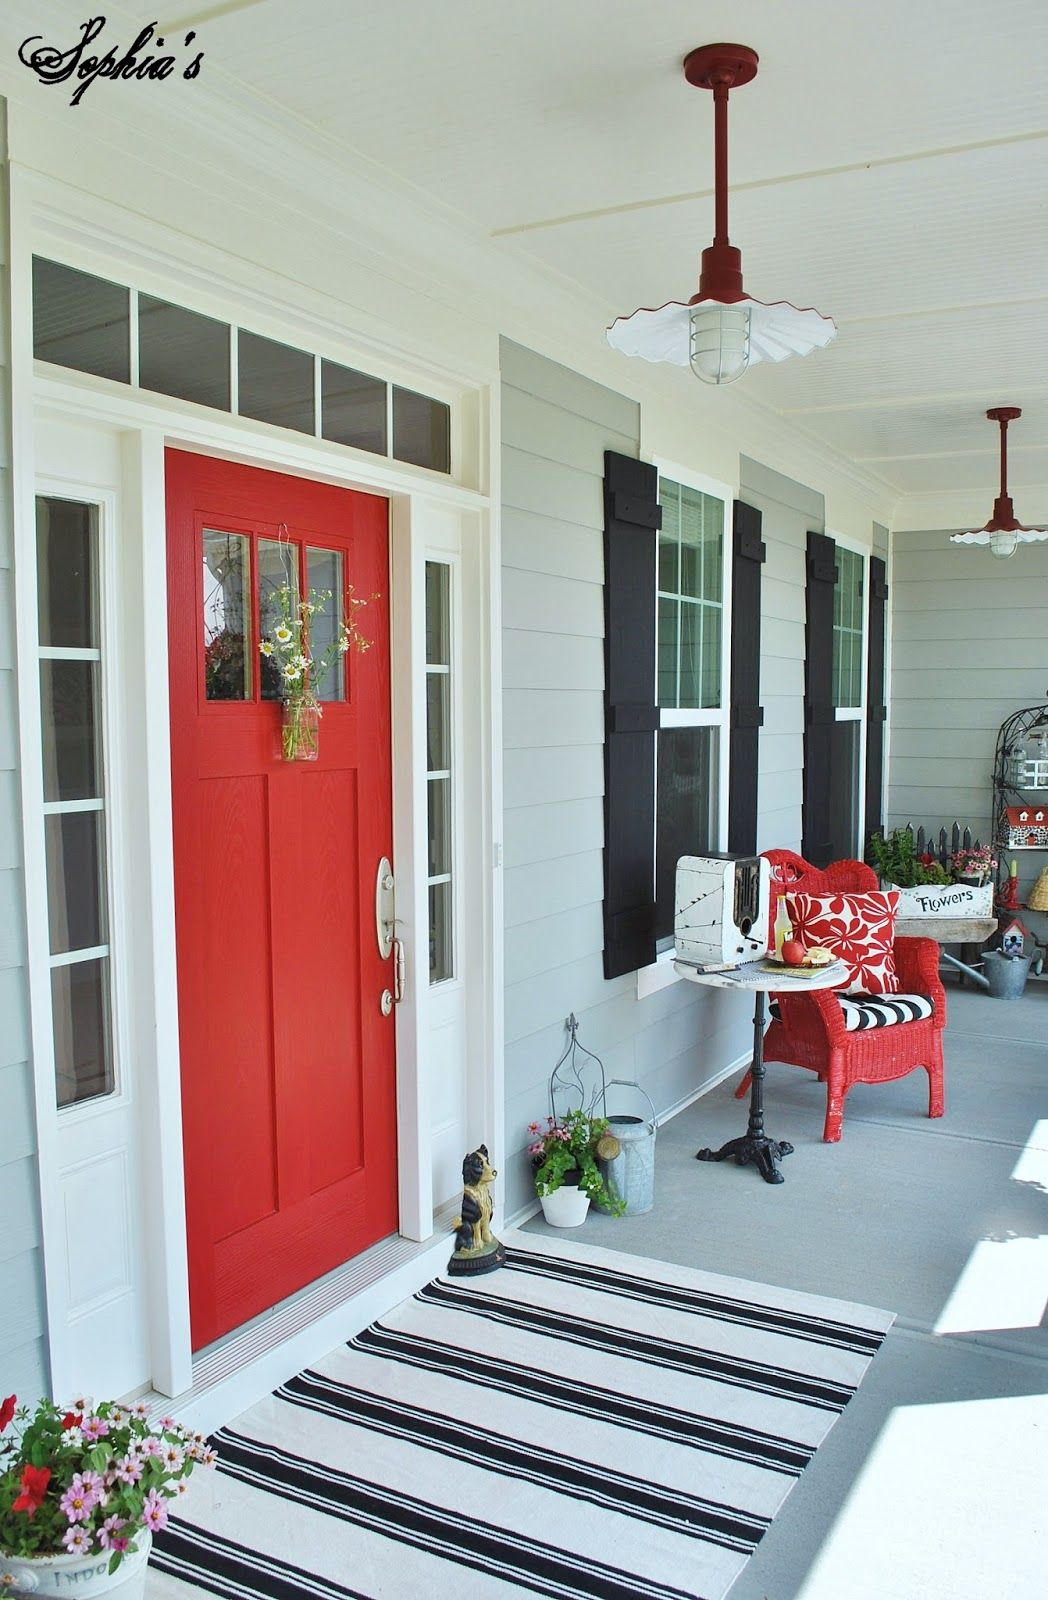 Decorating Red Door Interiors Images Inspiring Photos Gallery Of